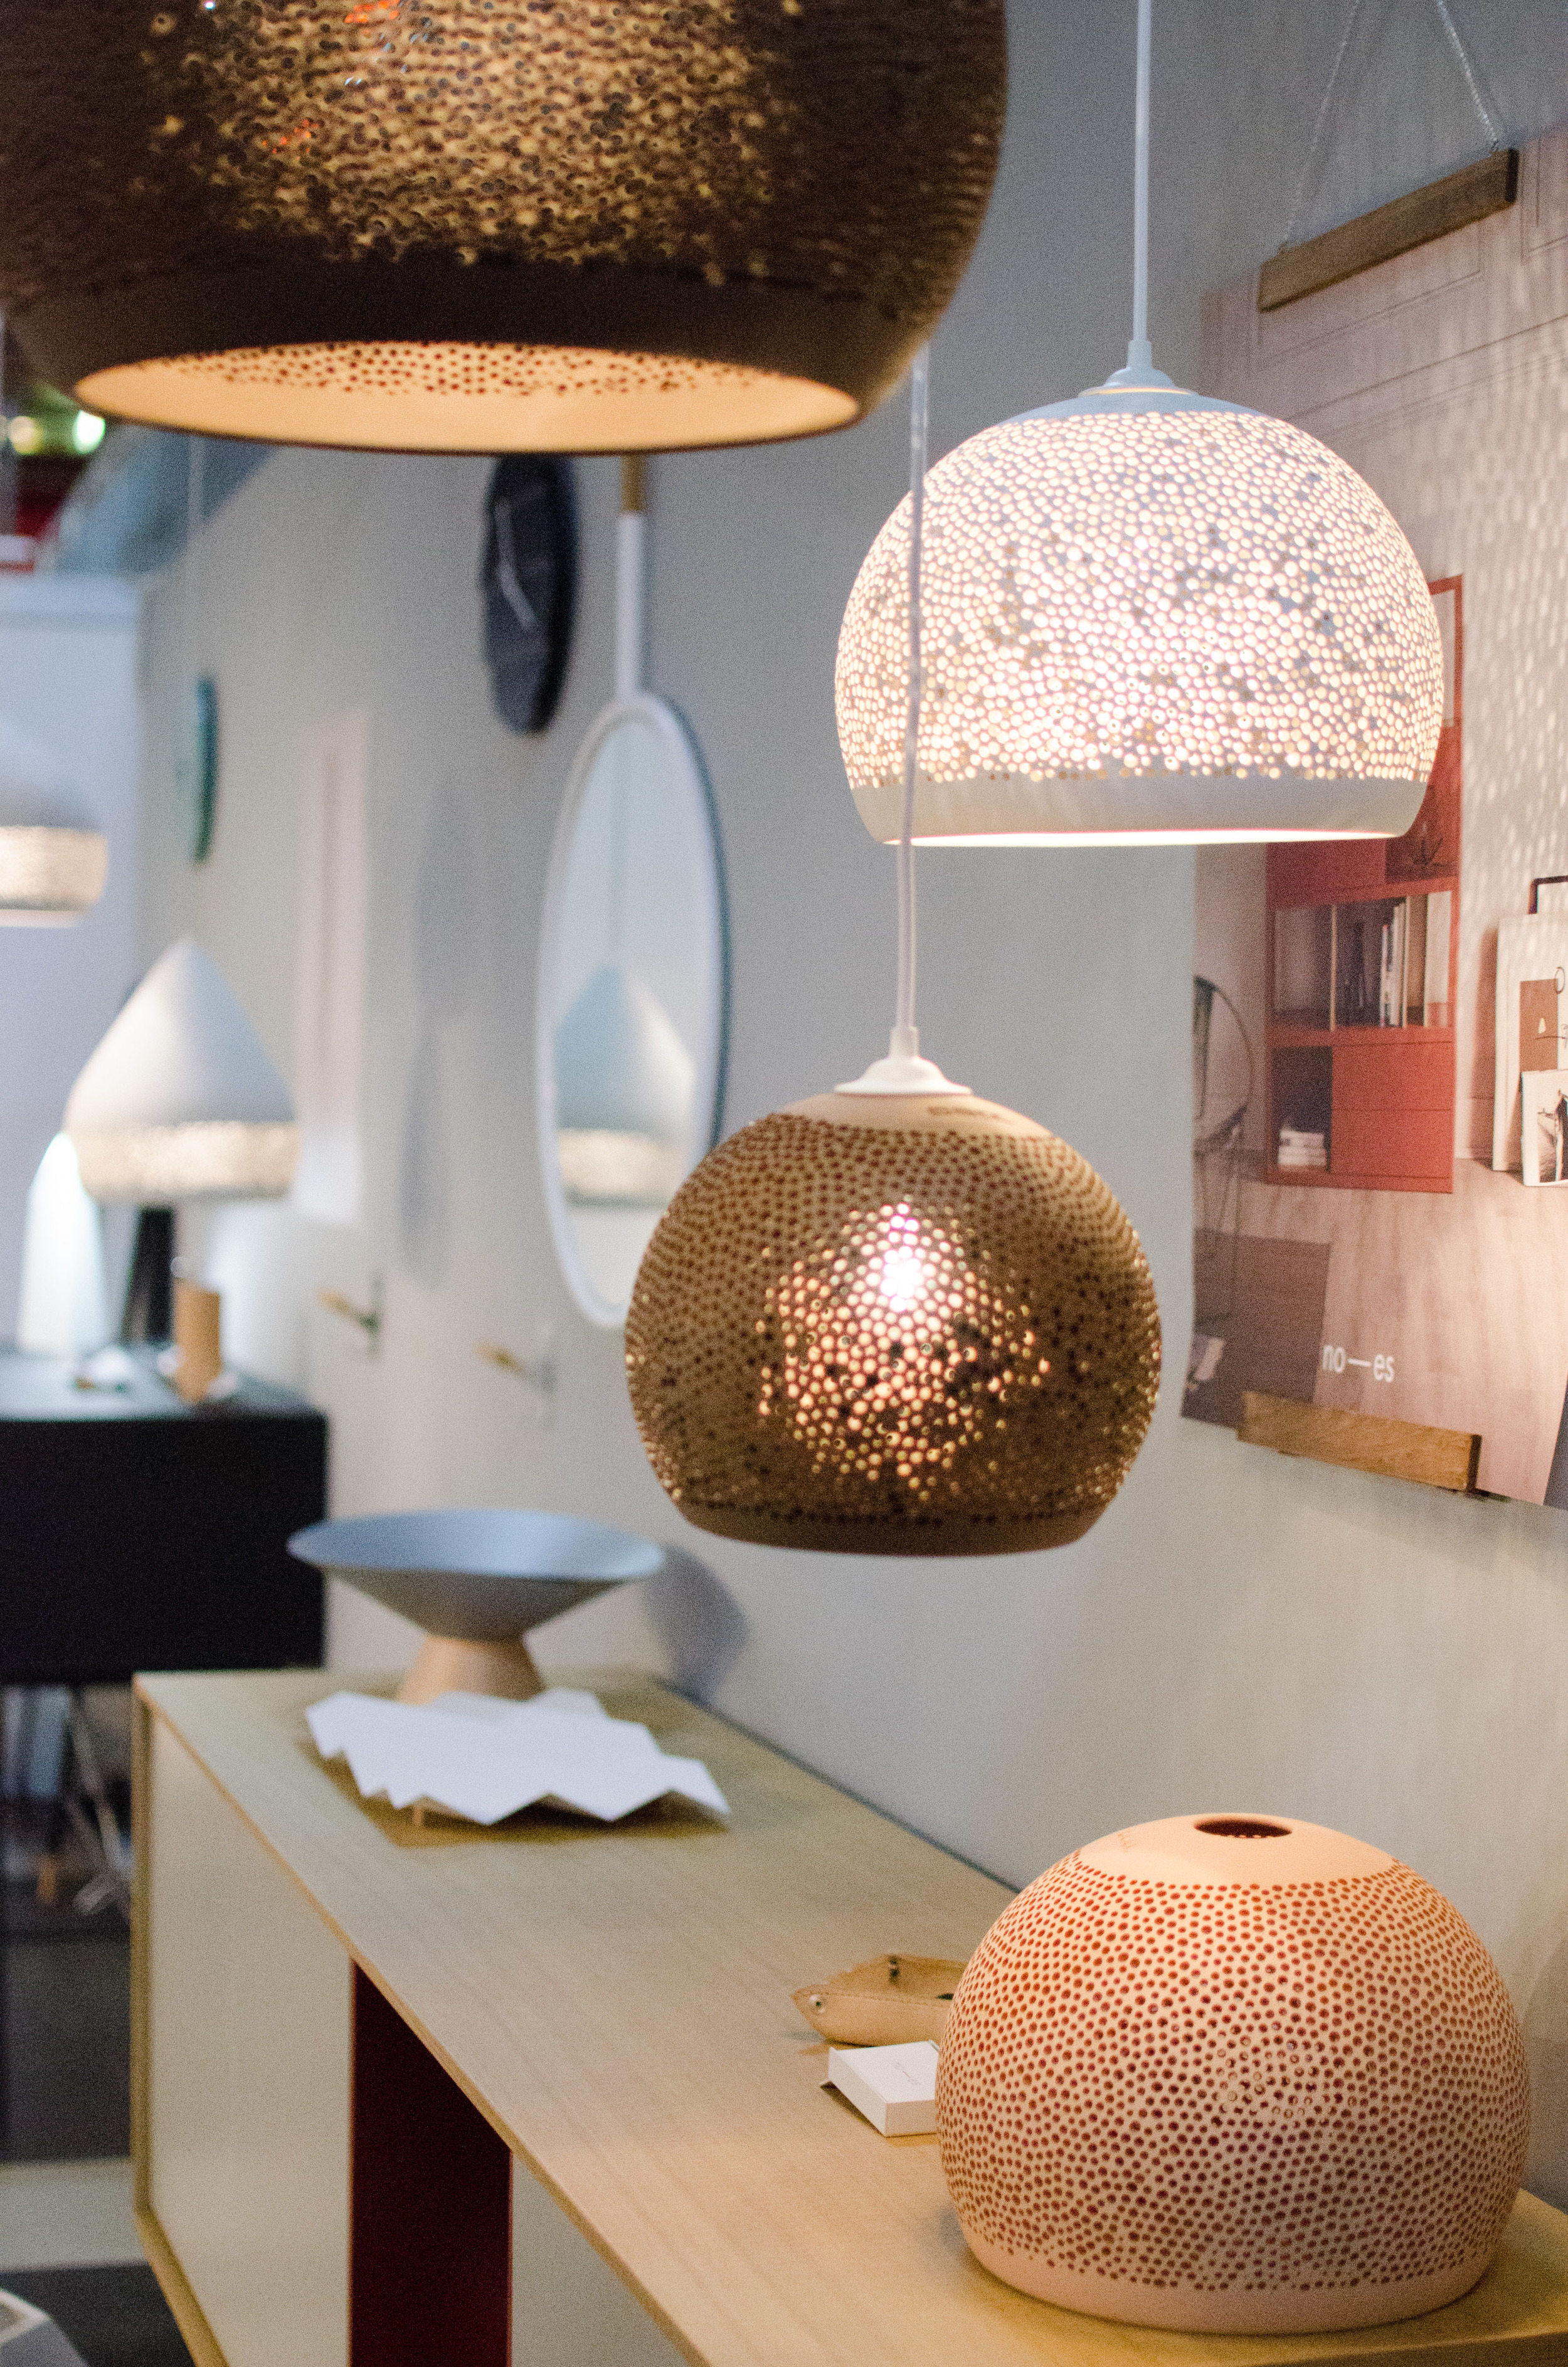 All you need is light! The beautiful handmade lamps from Pott drew a lot of attention to the stand.